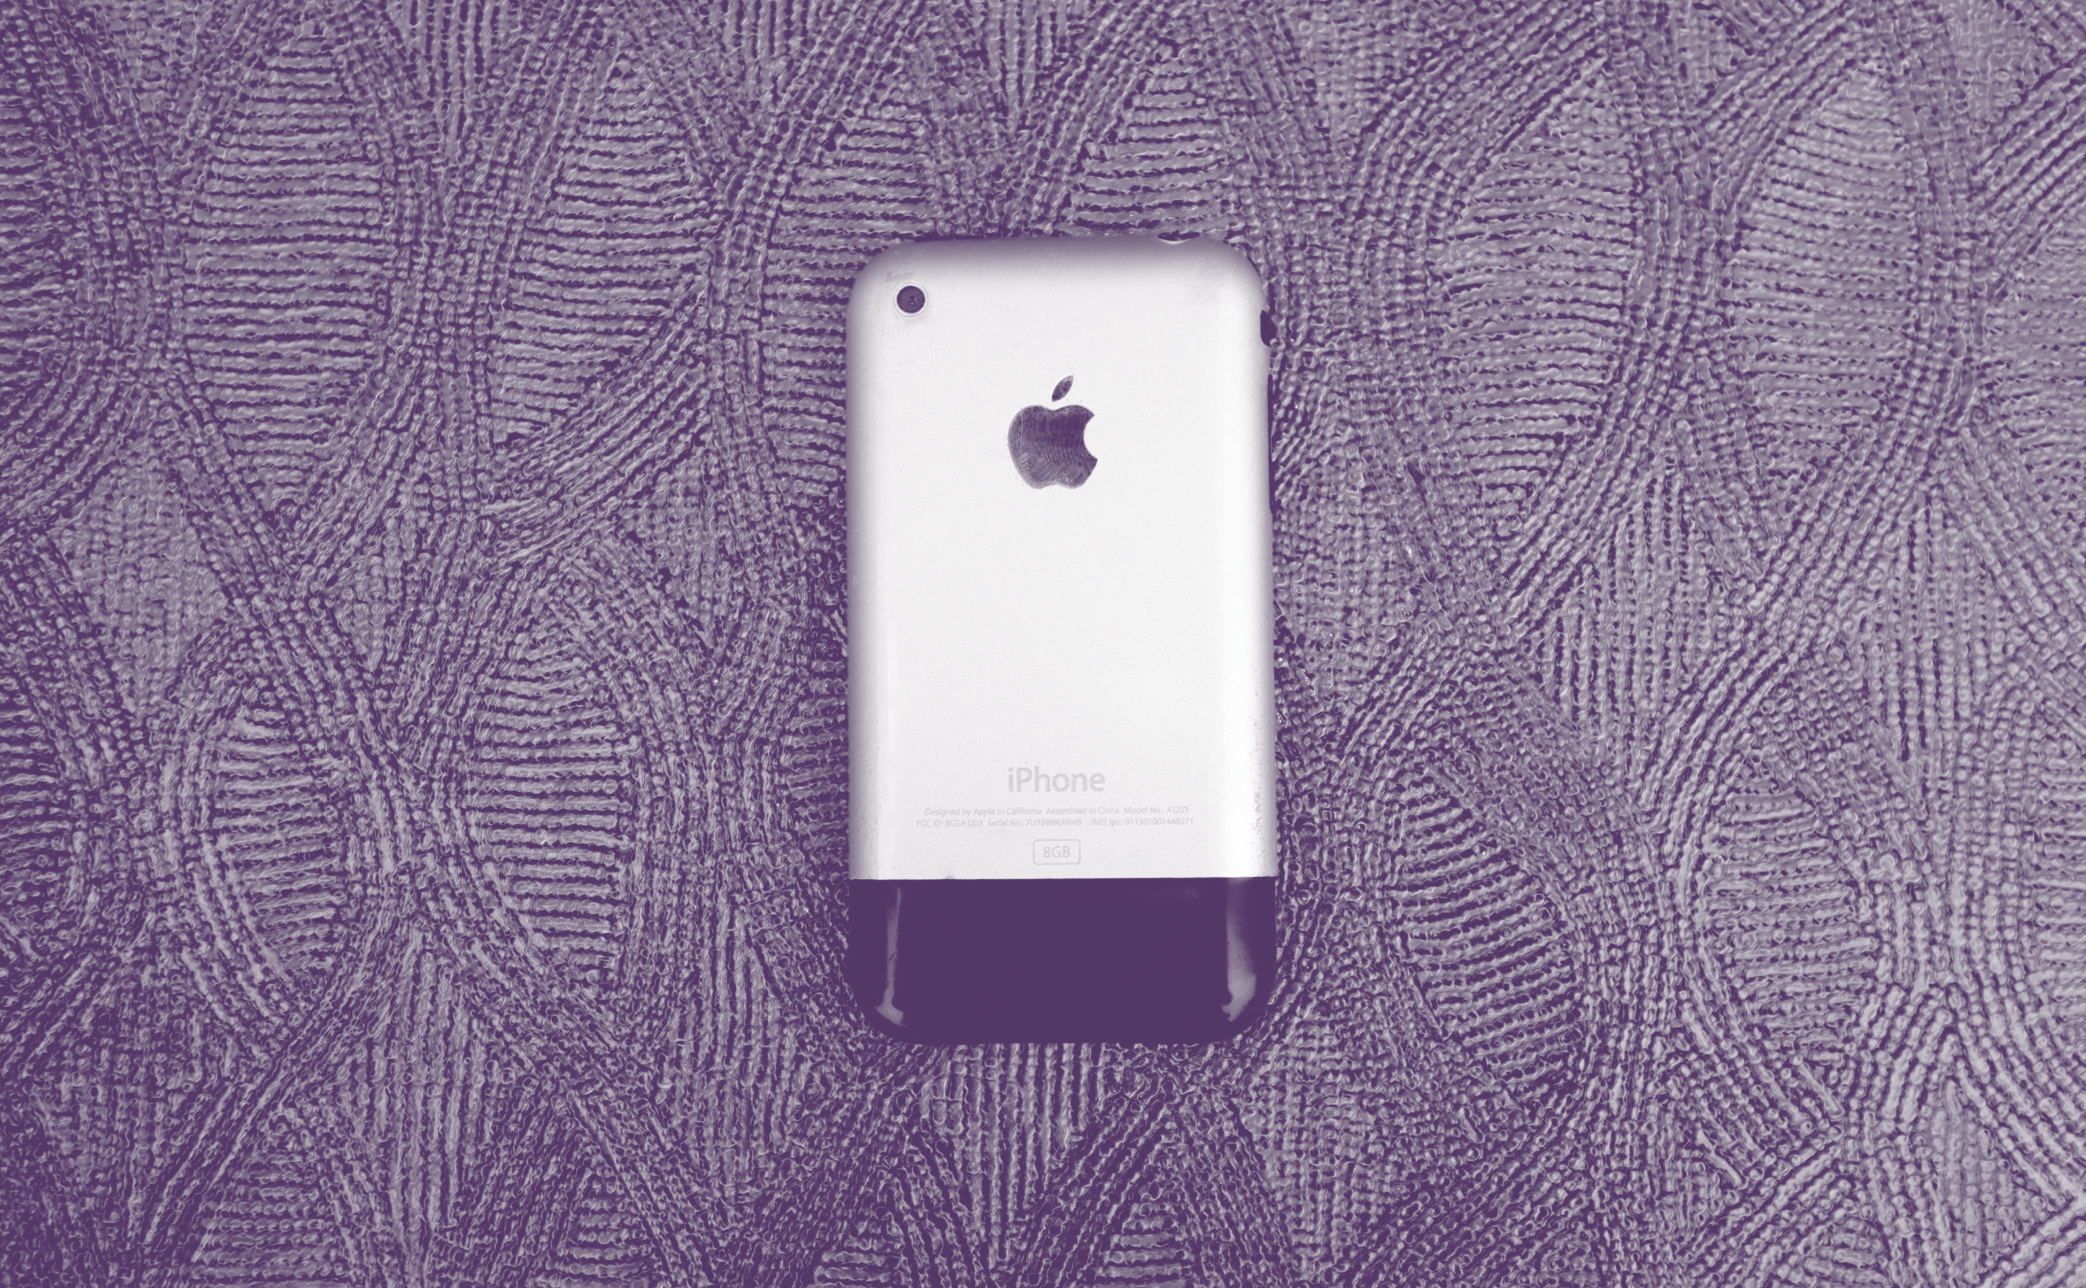 What the iPhone can tell us about devising successful projects